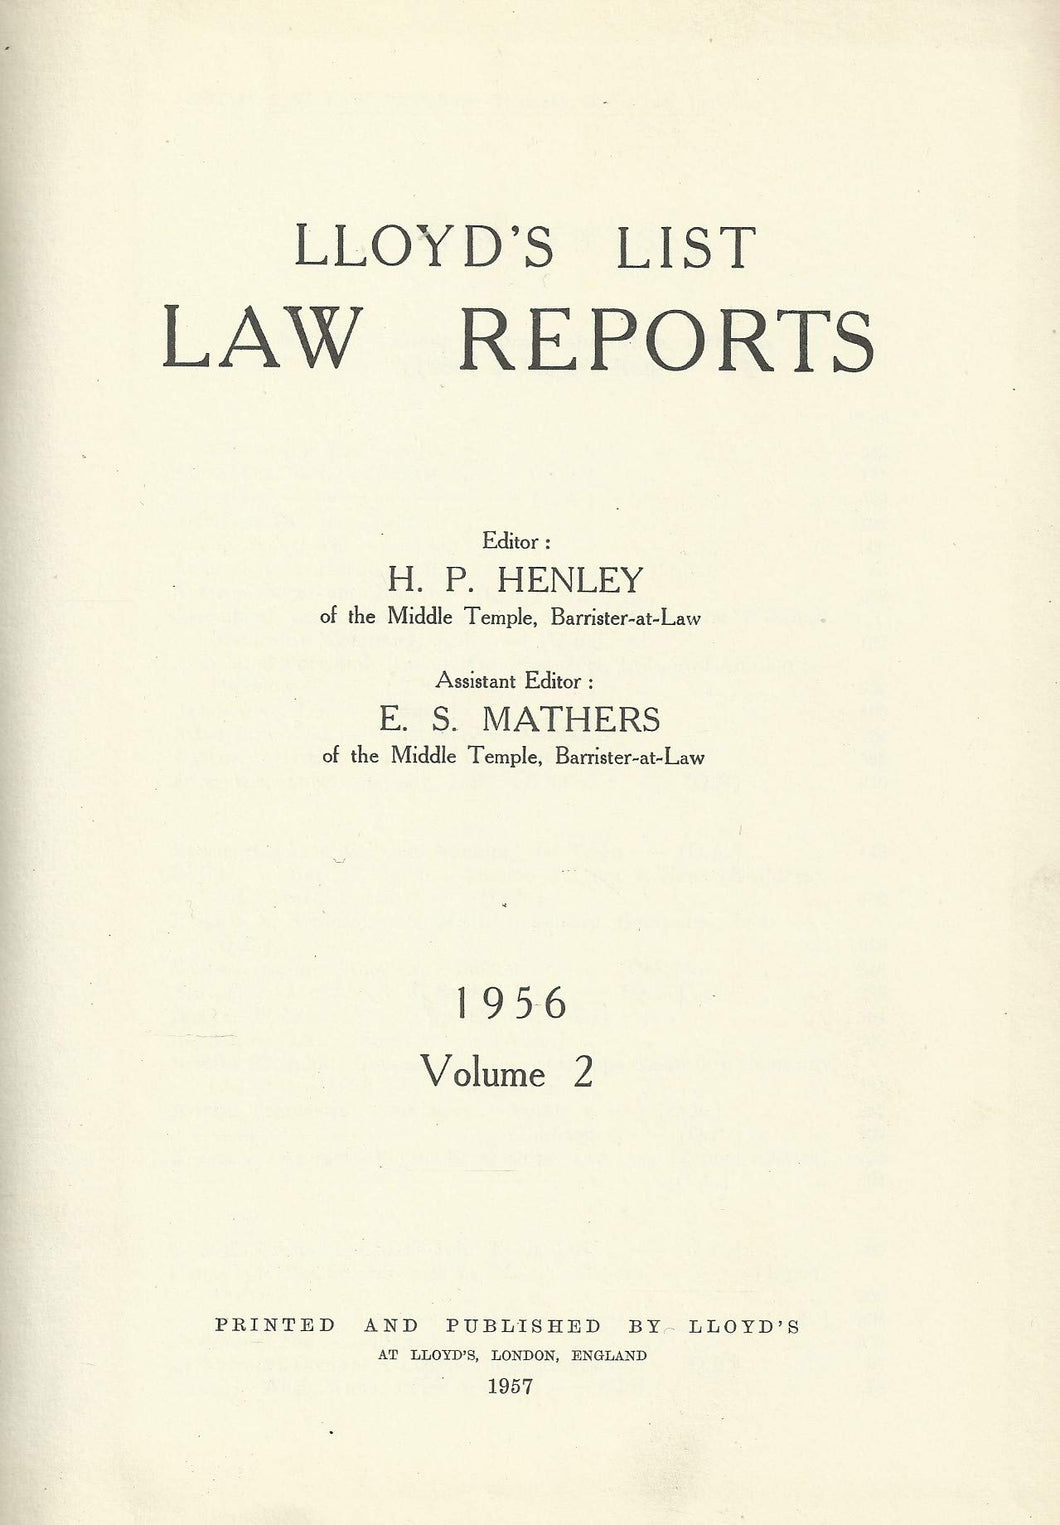 Lloyd's List Law Reports - 1956, Volume 2